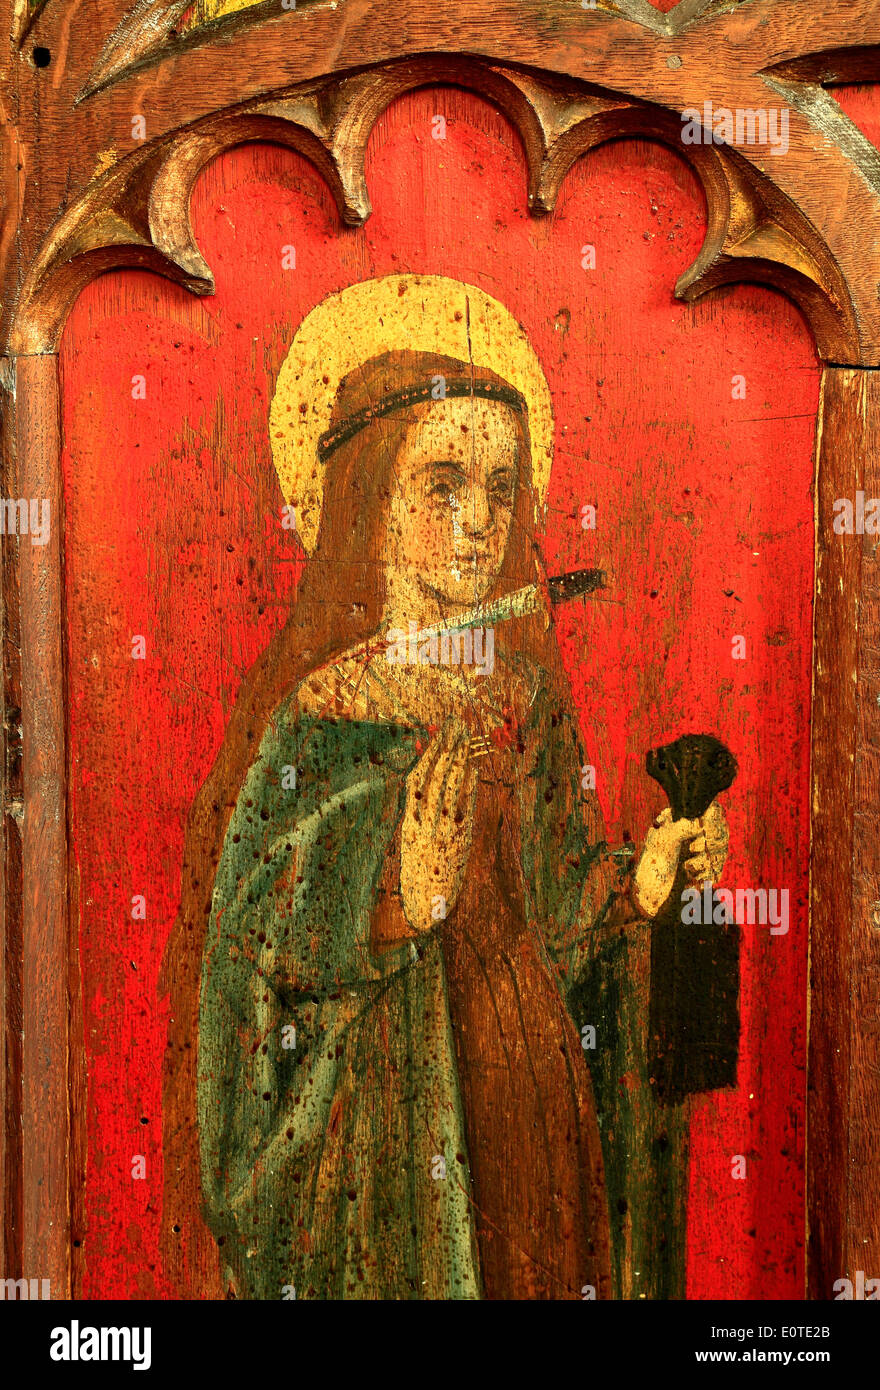 St. Agnes, English medieval rood screen painting, c.1500, North Tuddenham, Norfolk, with dagger at her throat, paintings art - Stock Image